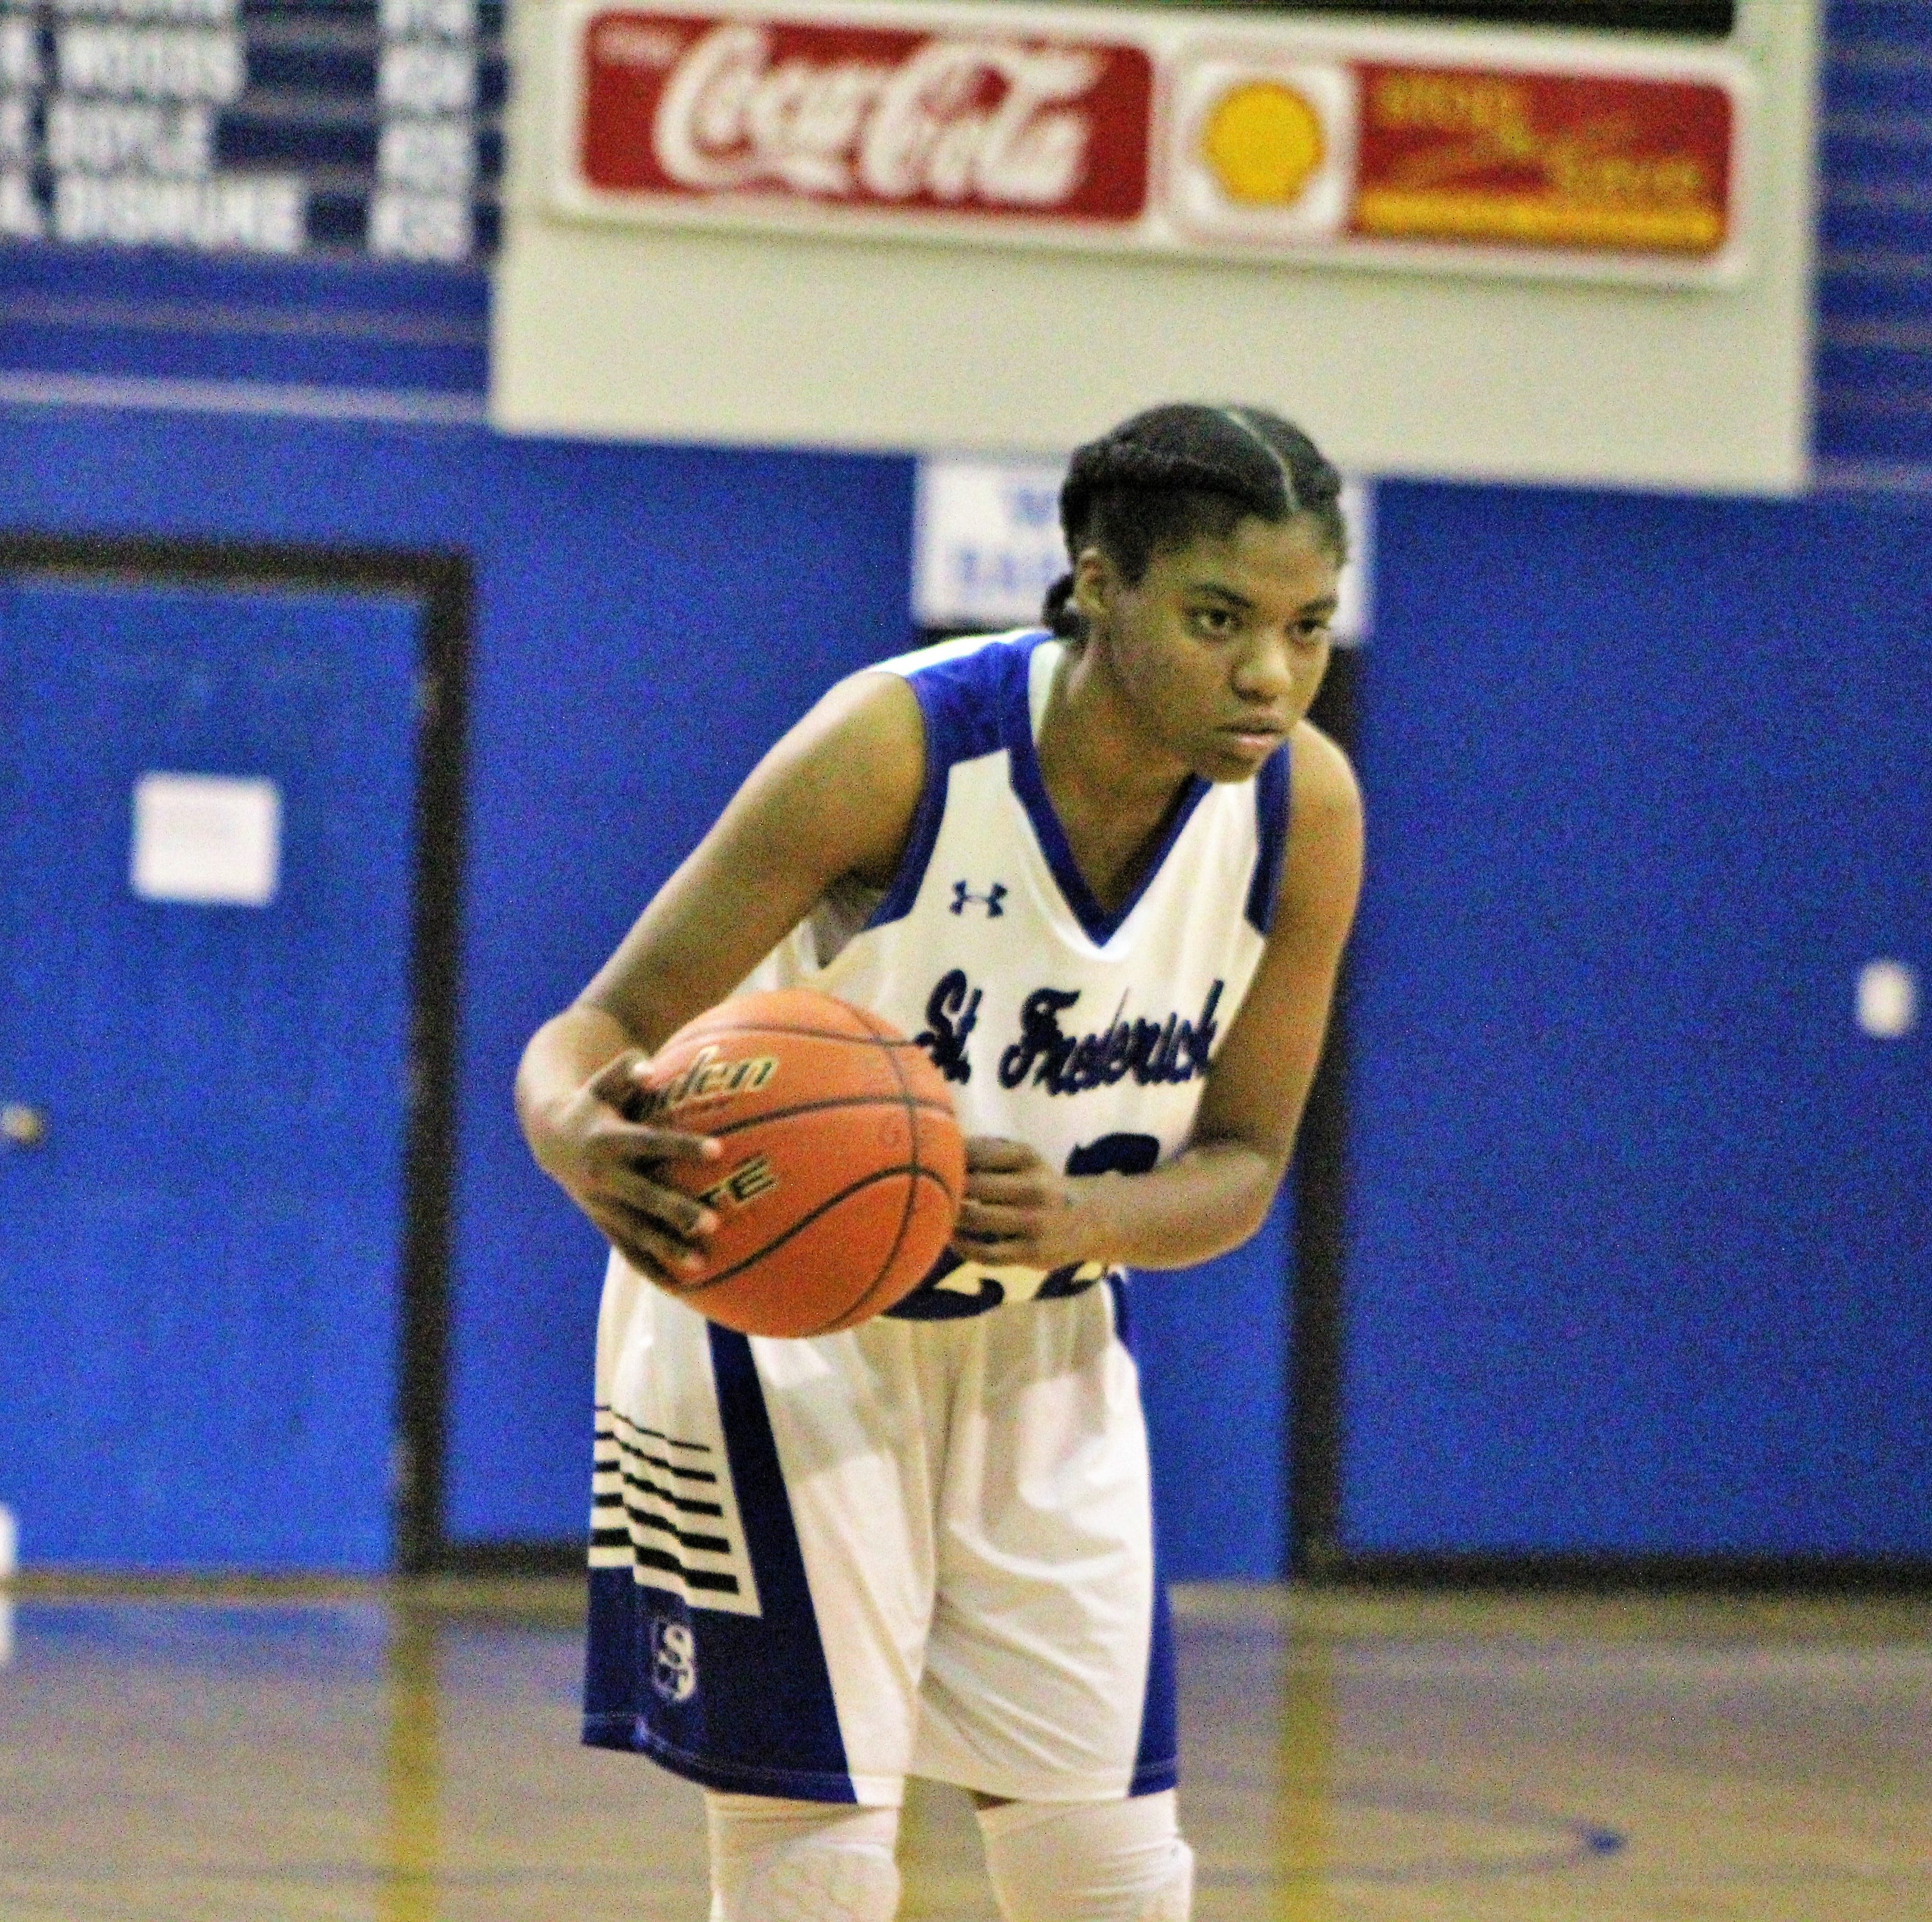 St. Frederick freshman Pashonnay Johnson (22) gets ready to move the ball up-court against Oak Grove in the Lady Warriors' 71-63 District 2-1A win at St. Frederick's Monseigneur Marsh Memorial Gym on Tuesday. Johnson scored 34 points to lead all scorers in the Lady Warriors' victory.